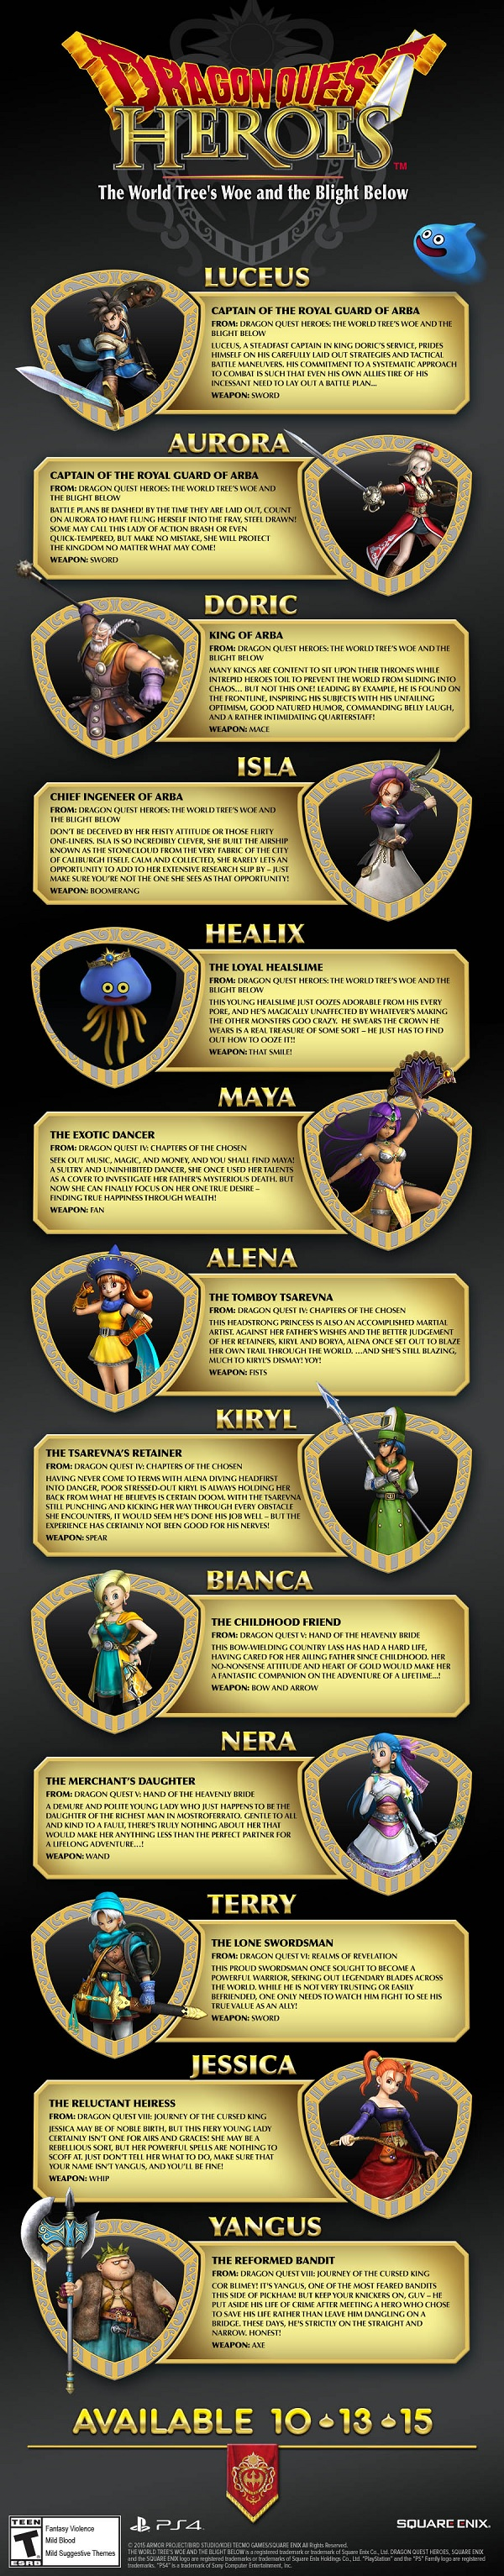 dragon-quest-heroes-infographic